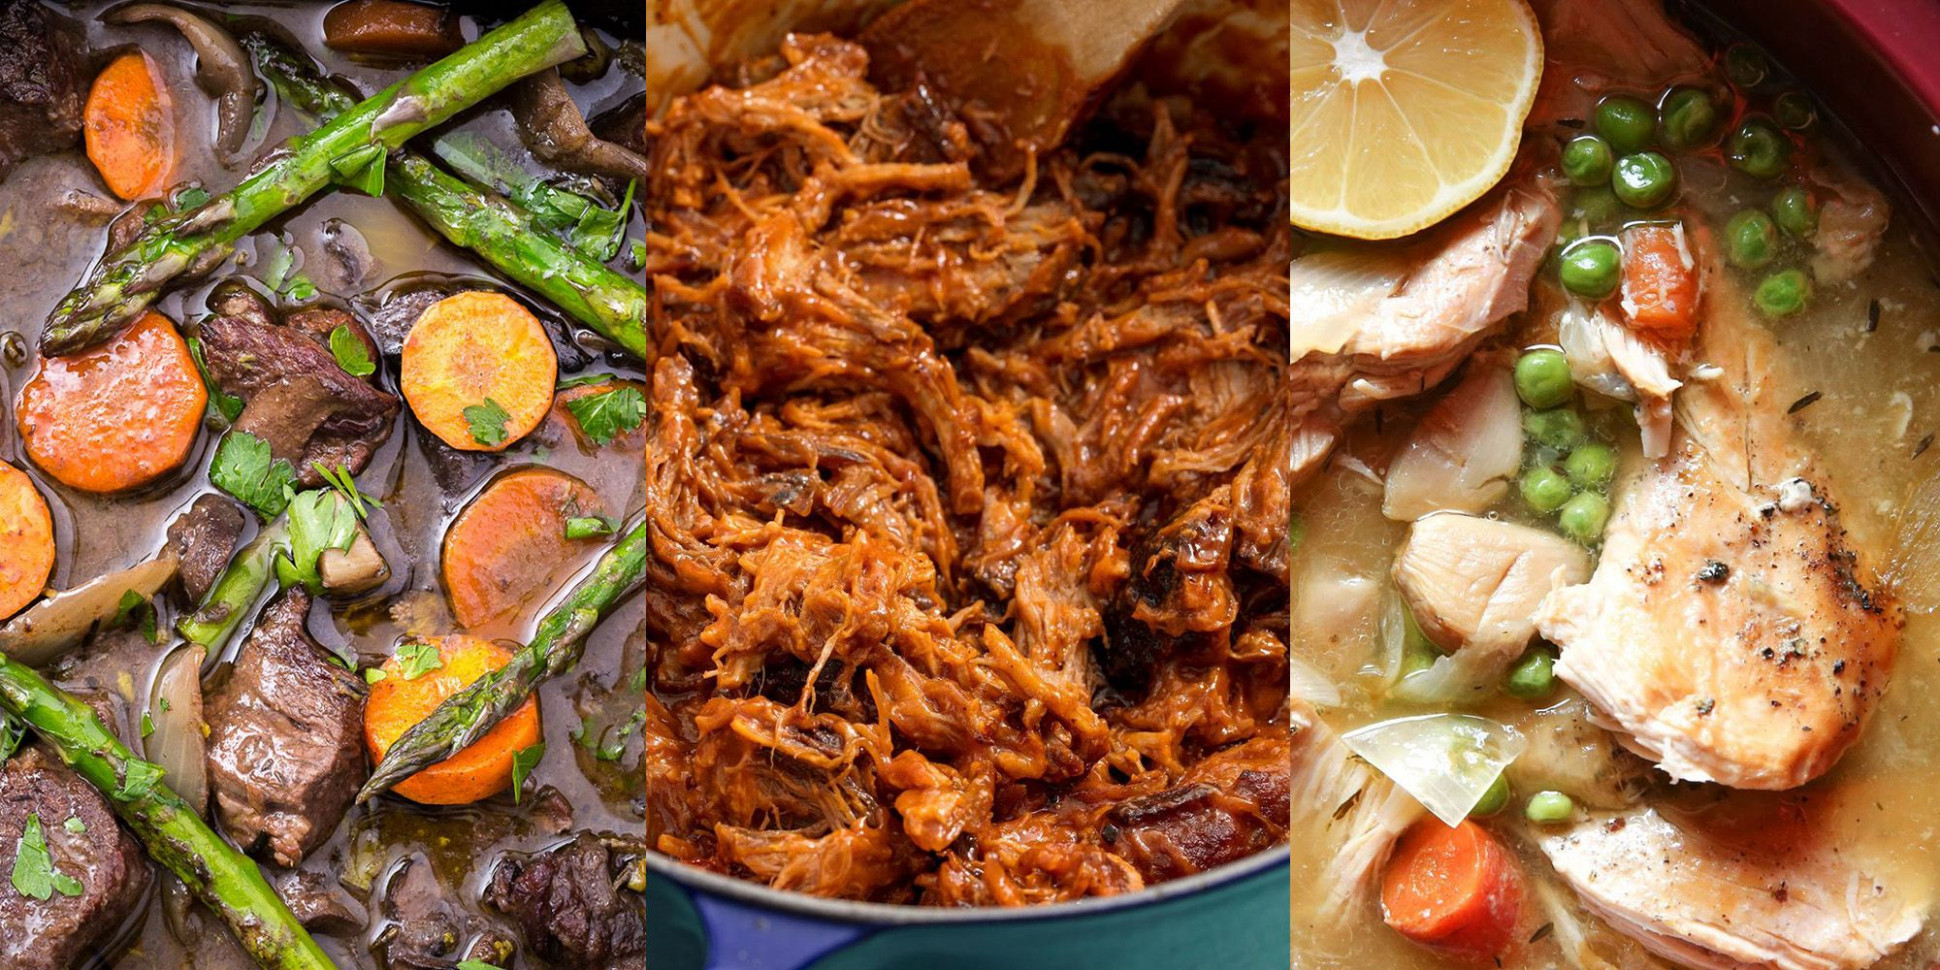 Slow Cooker Recipes - Easy, Healthy Slow Cooker Recipes - healthy slow cooker recipes